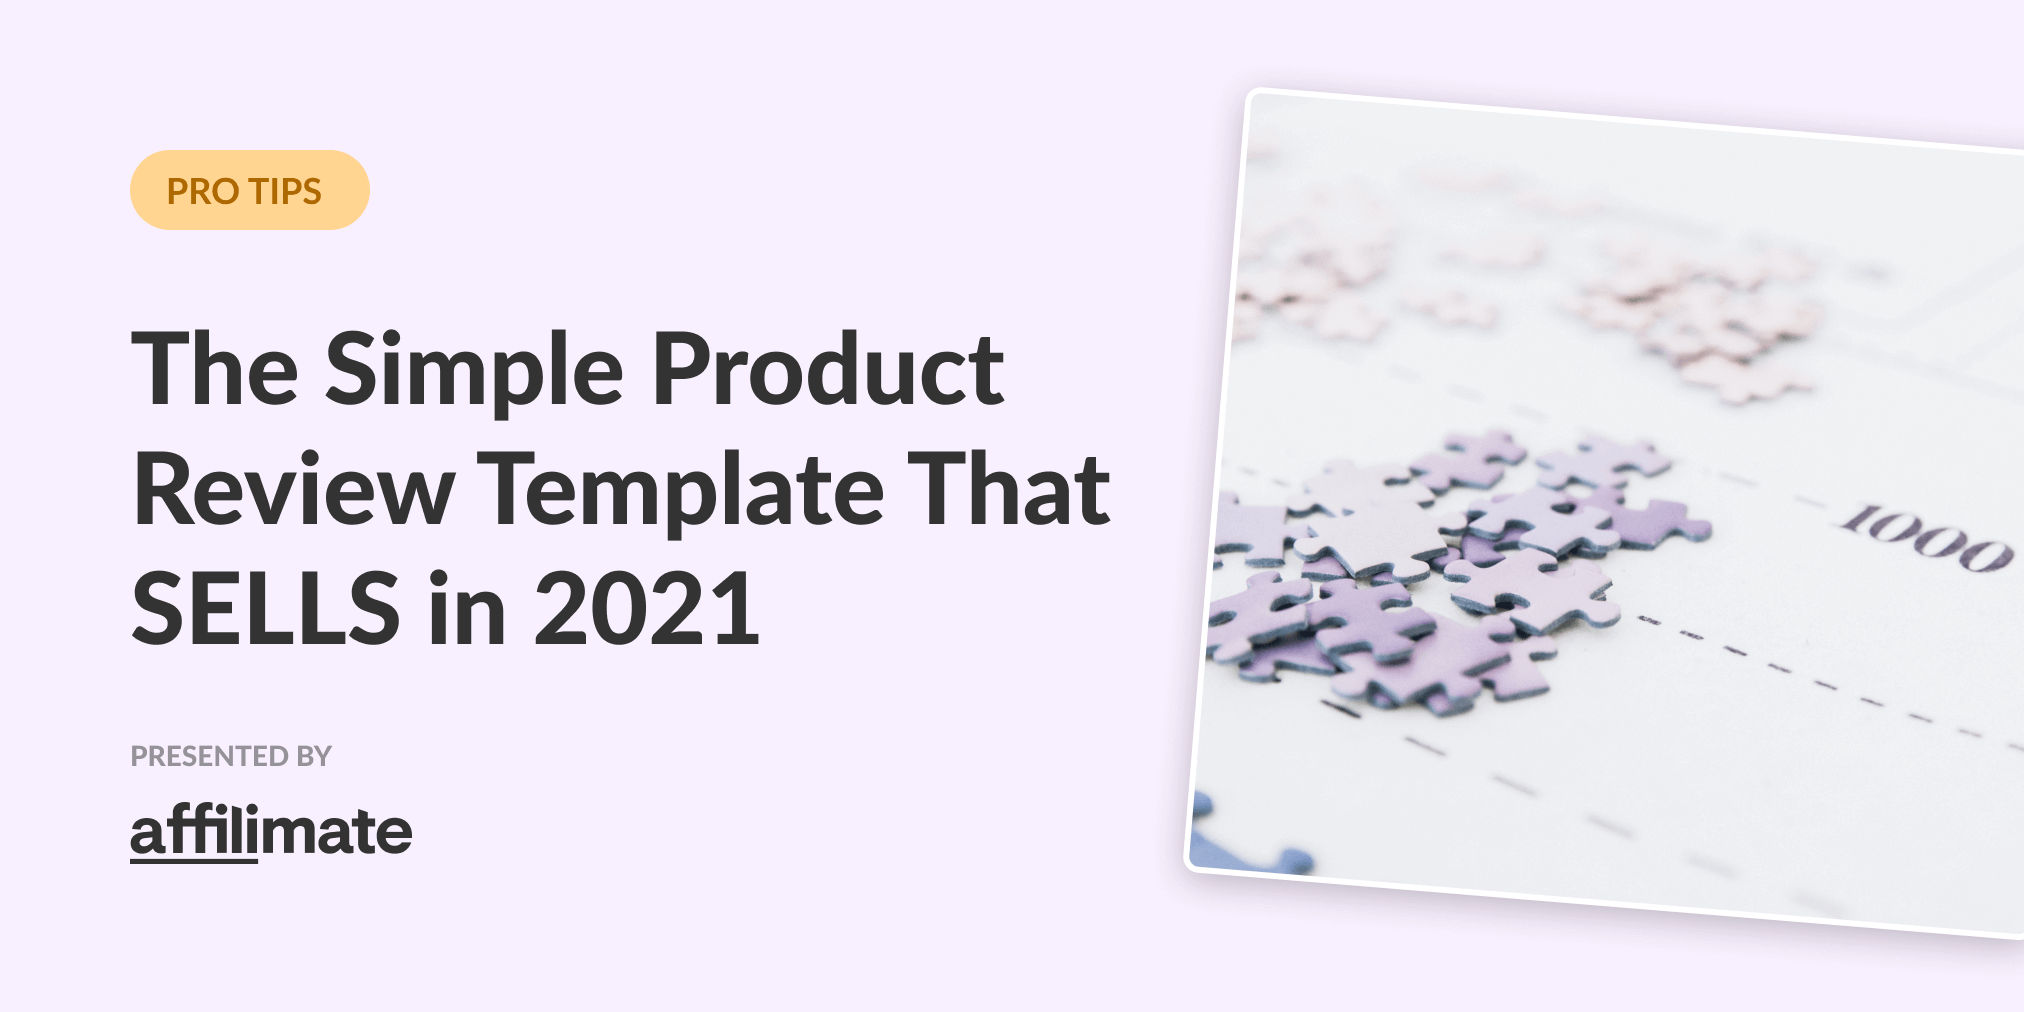 The Simple Product Review Template That SELLS in 2021